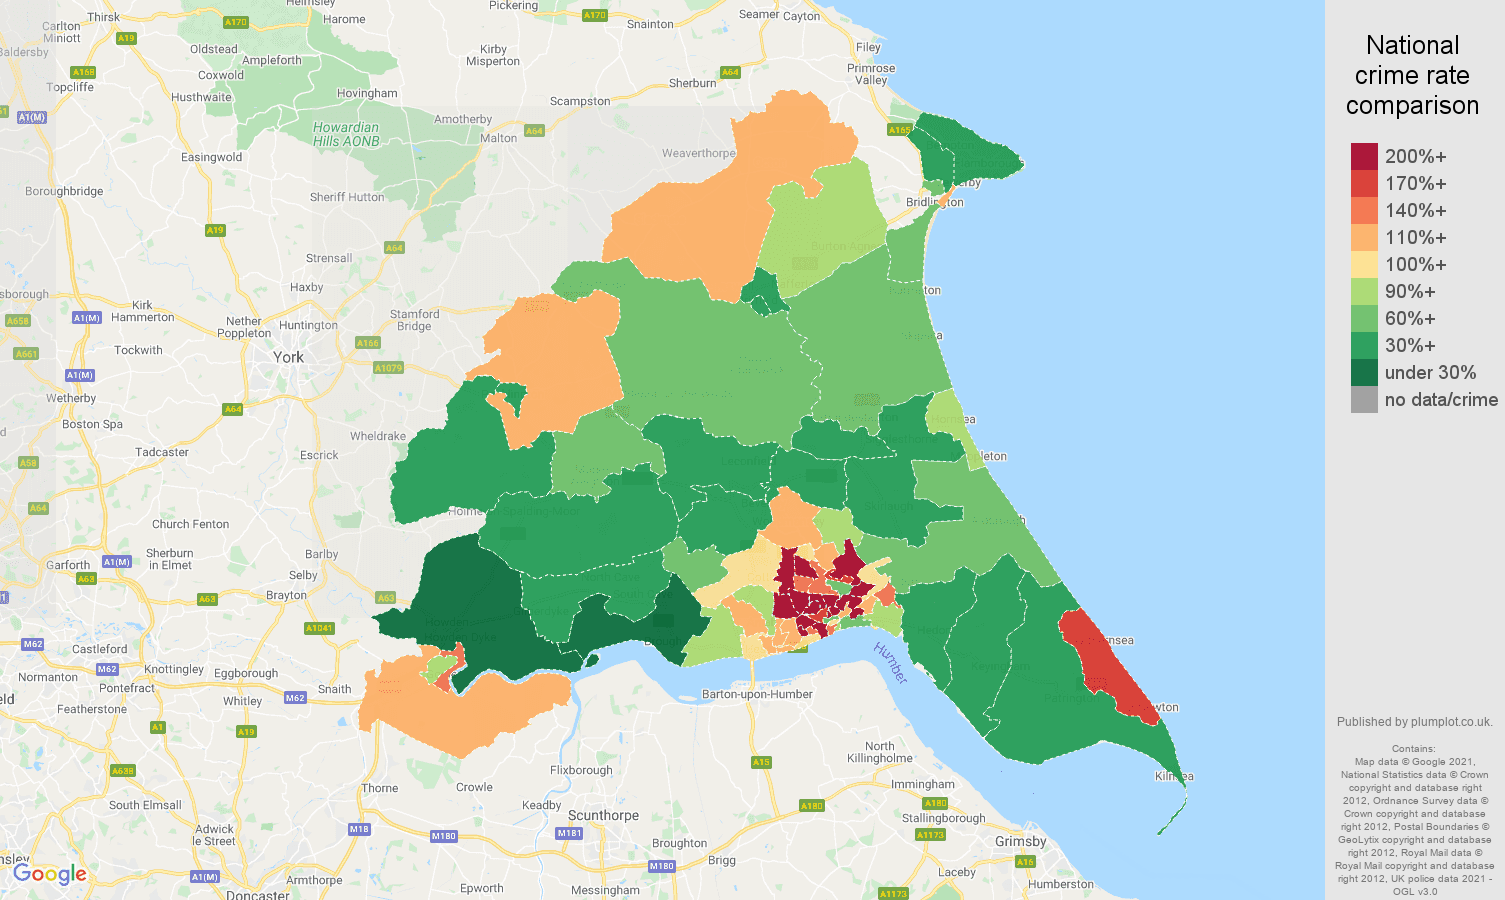 East Riding of Yorkshire burglary crime rate comparison map